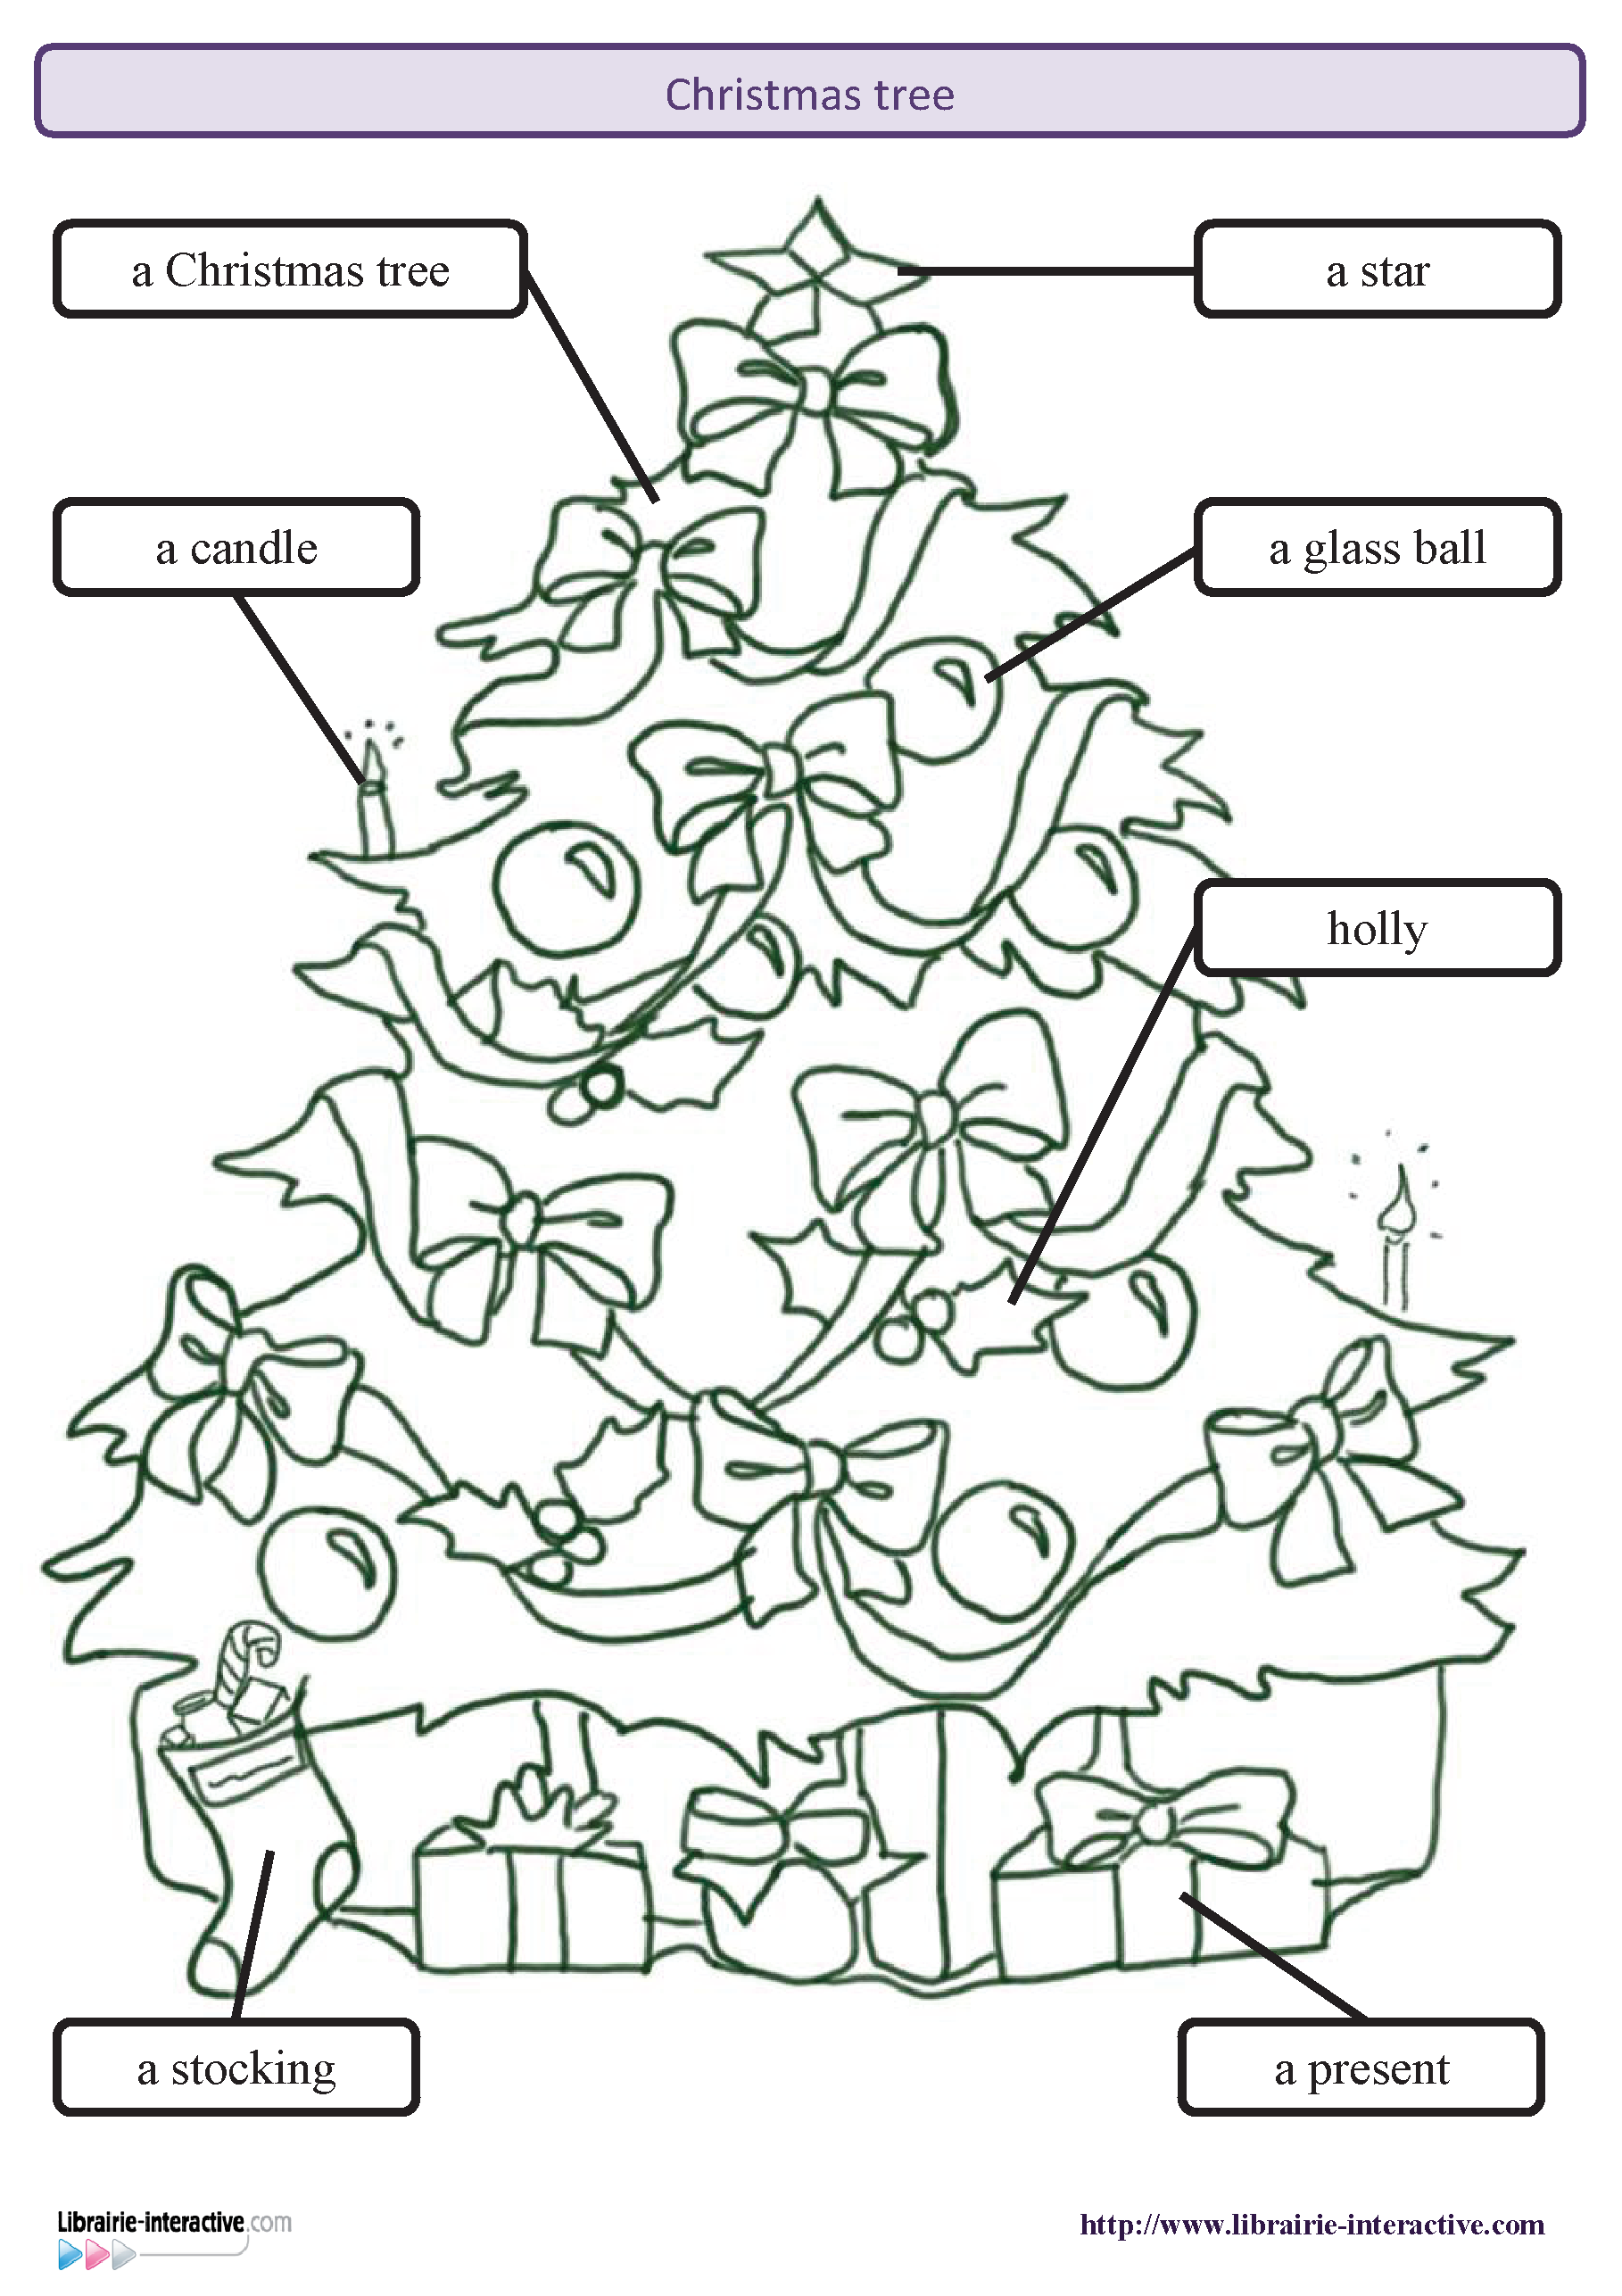 Librairie Interactive   Christmas tree | Apprendre l'anglais, Noel